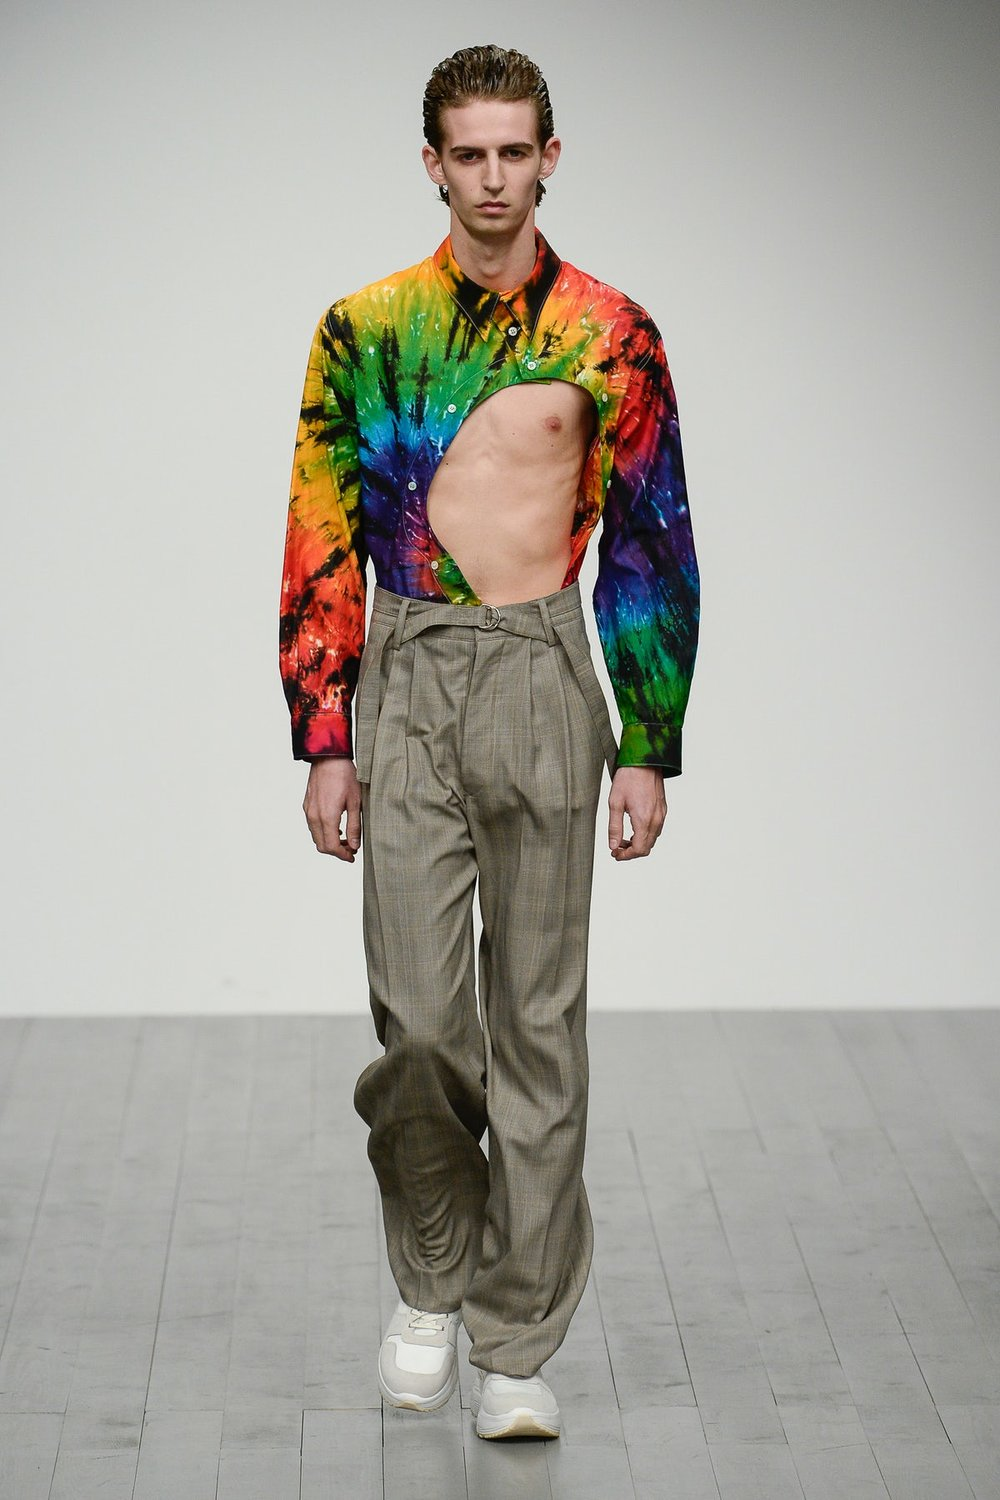 alex_mullins_look_9_menswear_autumn_2018.jpeg